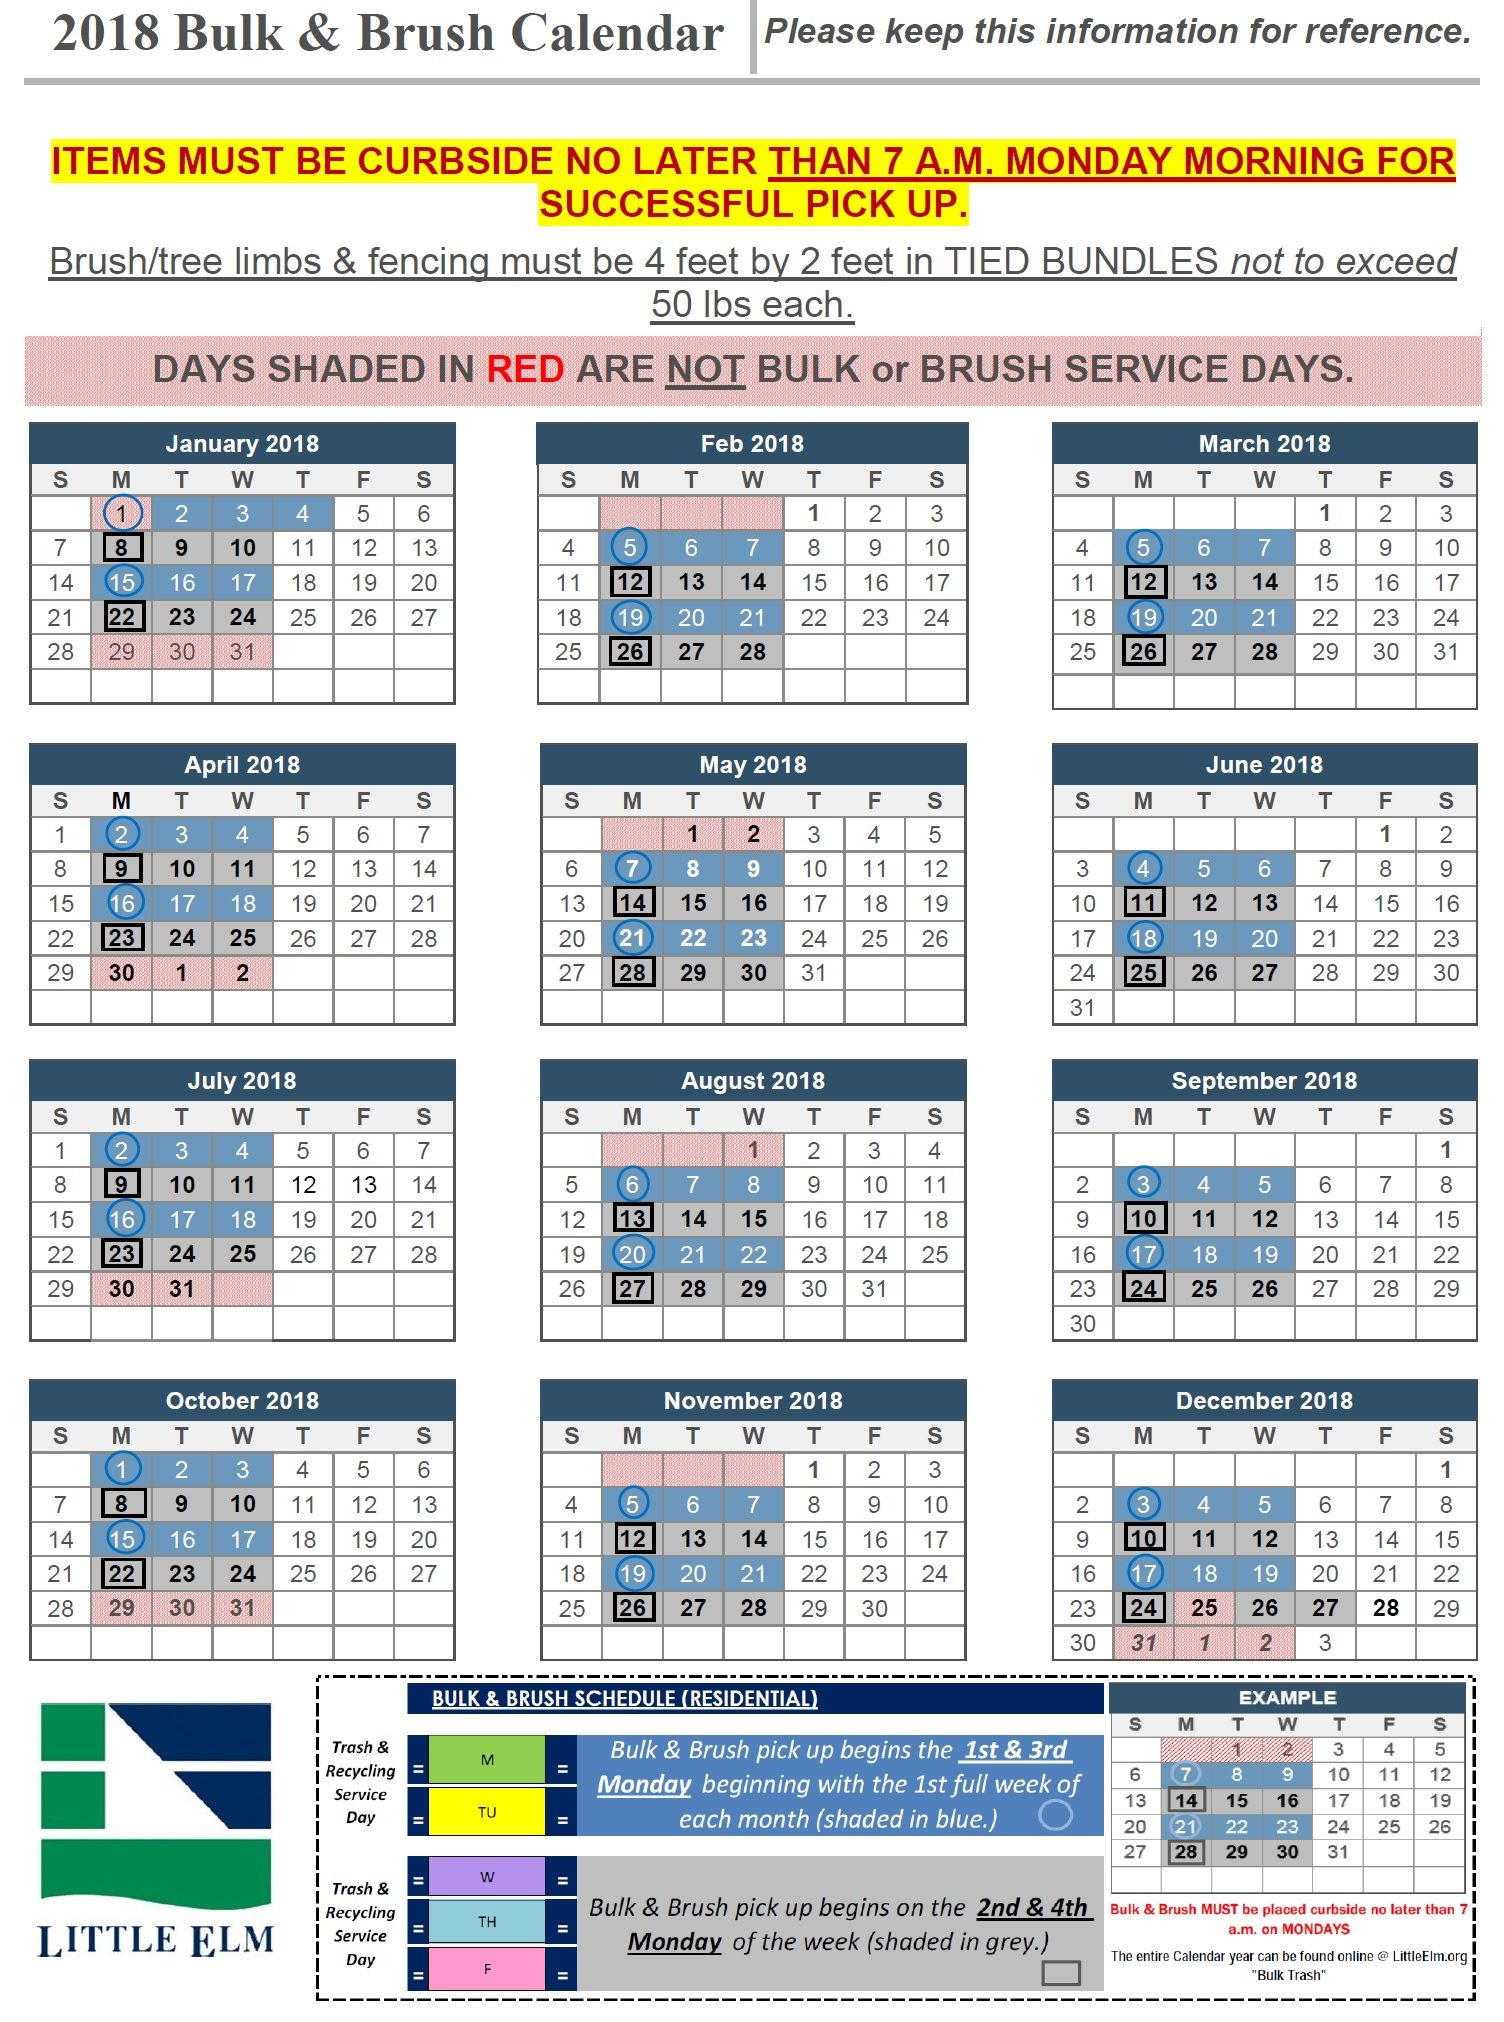 2018 Bulk and Brush Calendar